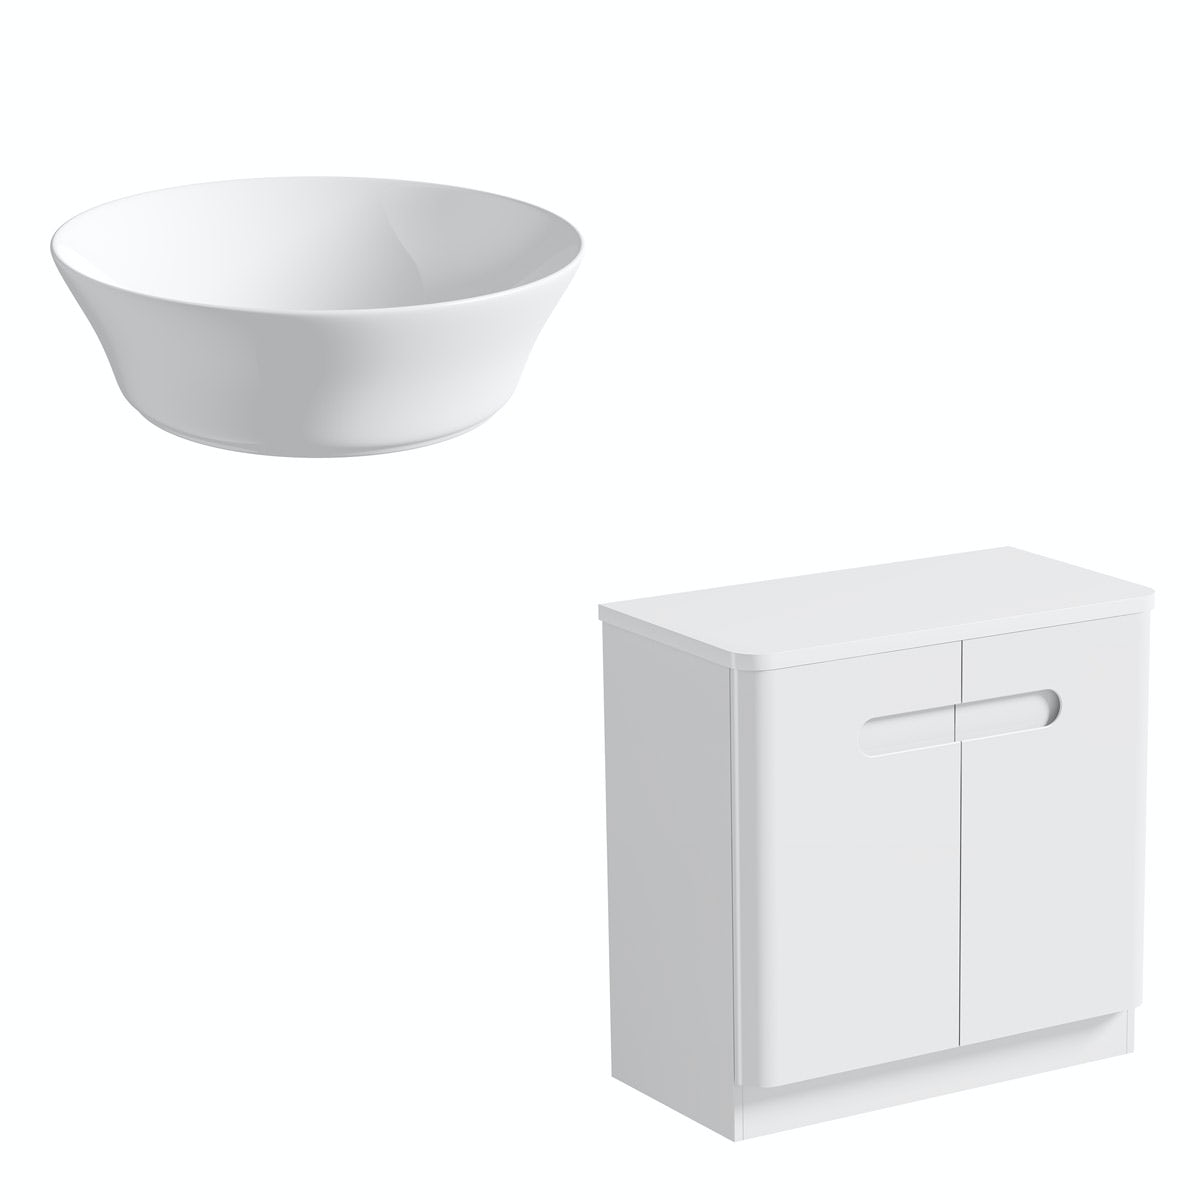 Mode Ellis white countertop door unit 800mm with Bowery basin